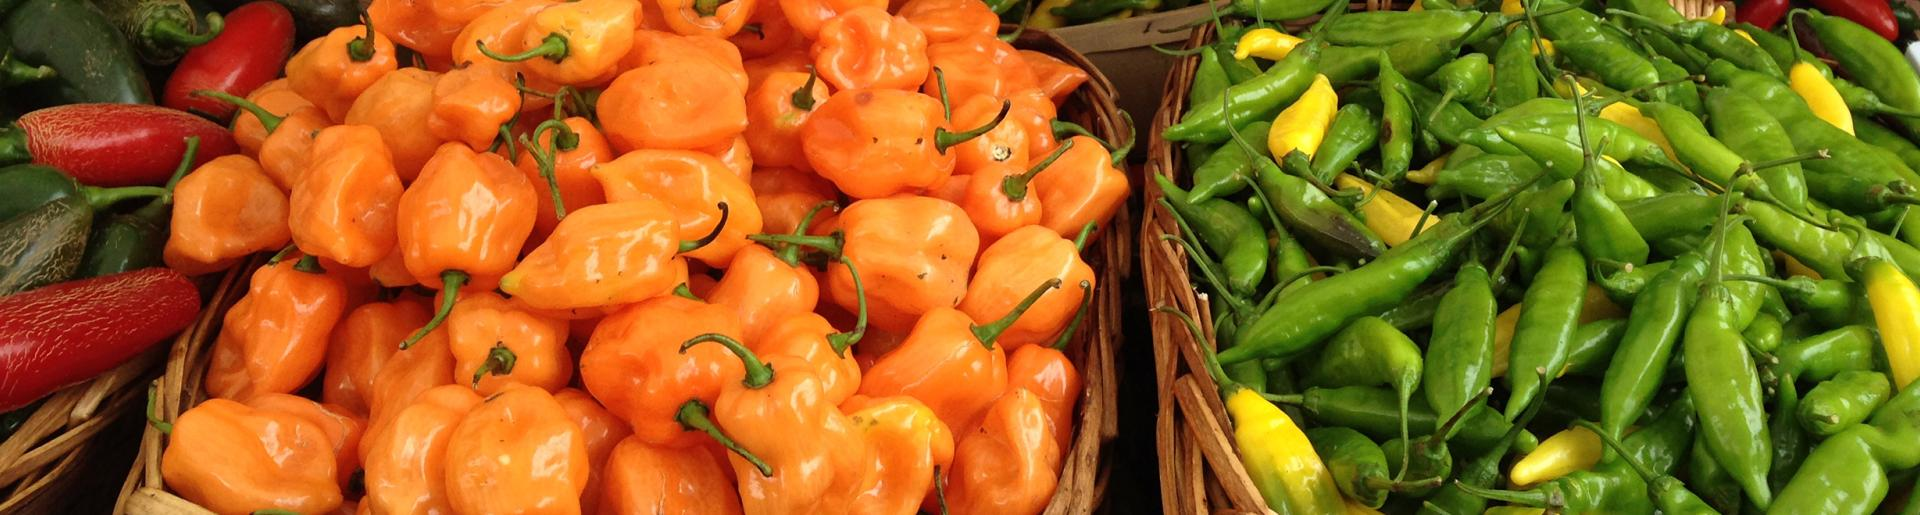 Savory Accents: Peppers